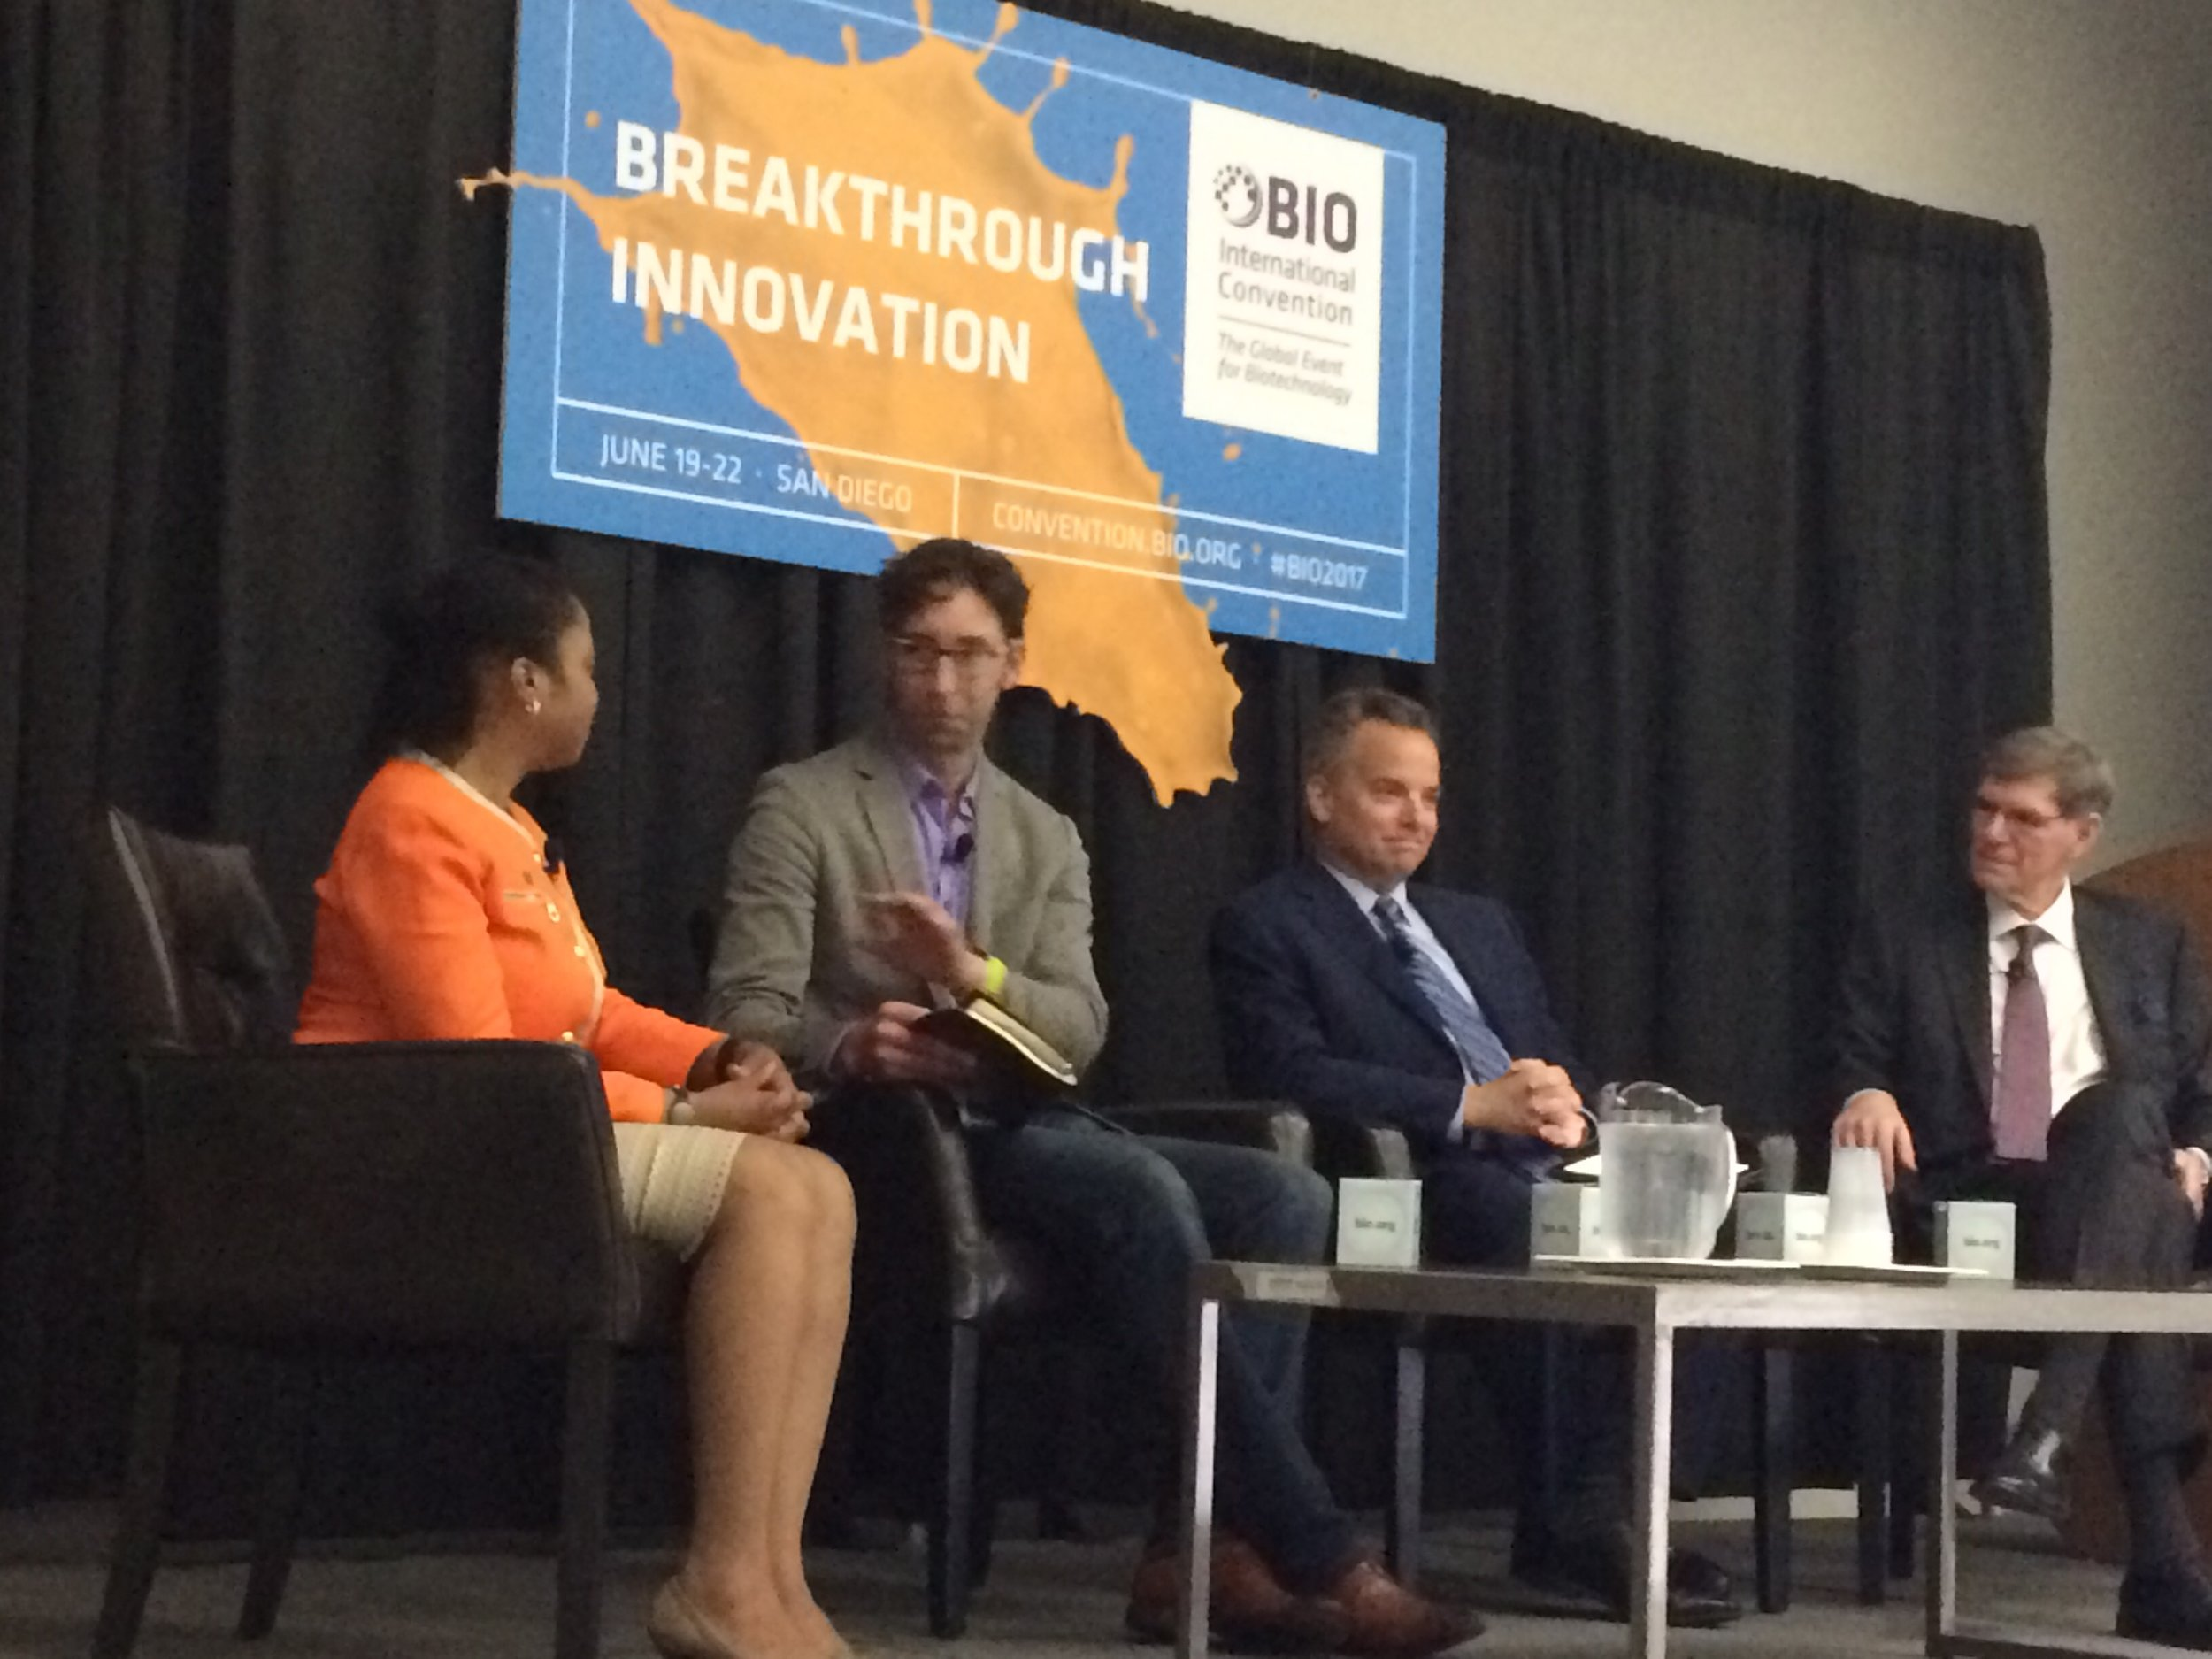 Panel at BIO 2017: A World Without Disease: Can We Get There?  Mike Cobur, Research! America Donna Cryer, JD, Global Liver Institute William Hait, Janssen Research & Development, LLC Mark McClellan, MD, PhD, Duke University Luke Timmerman, Timmerman Report